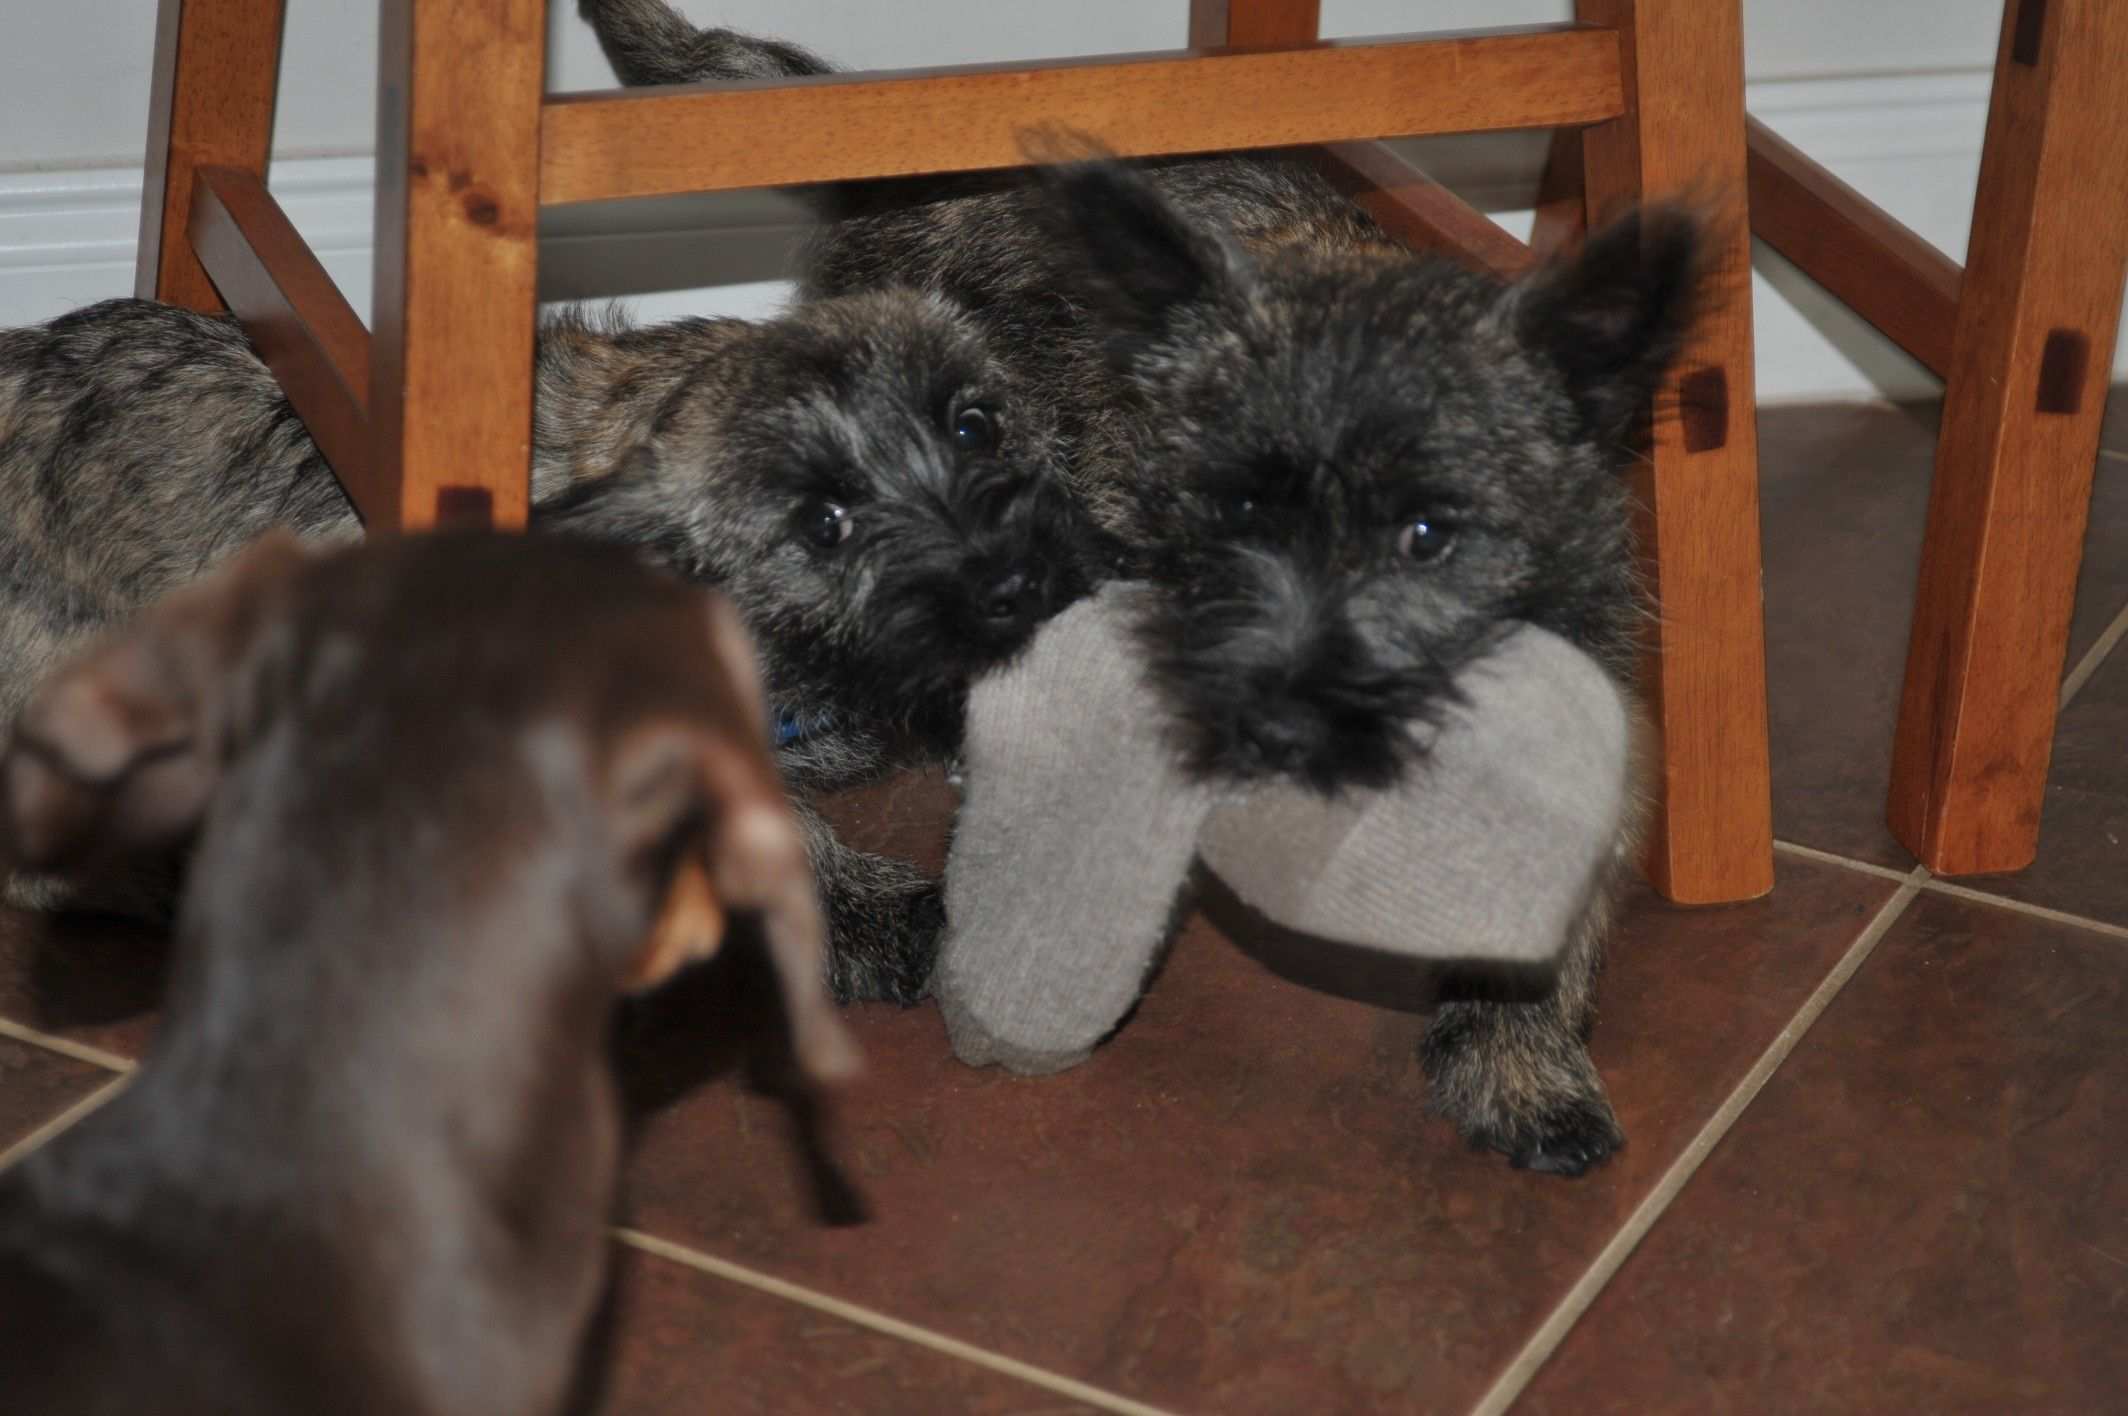 2 Cairns And The Weiner Interloper With Images Cairn Terrier Animals And Pets Terrier